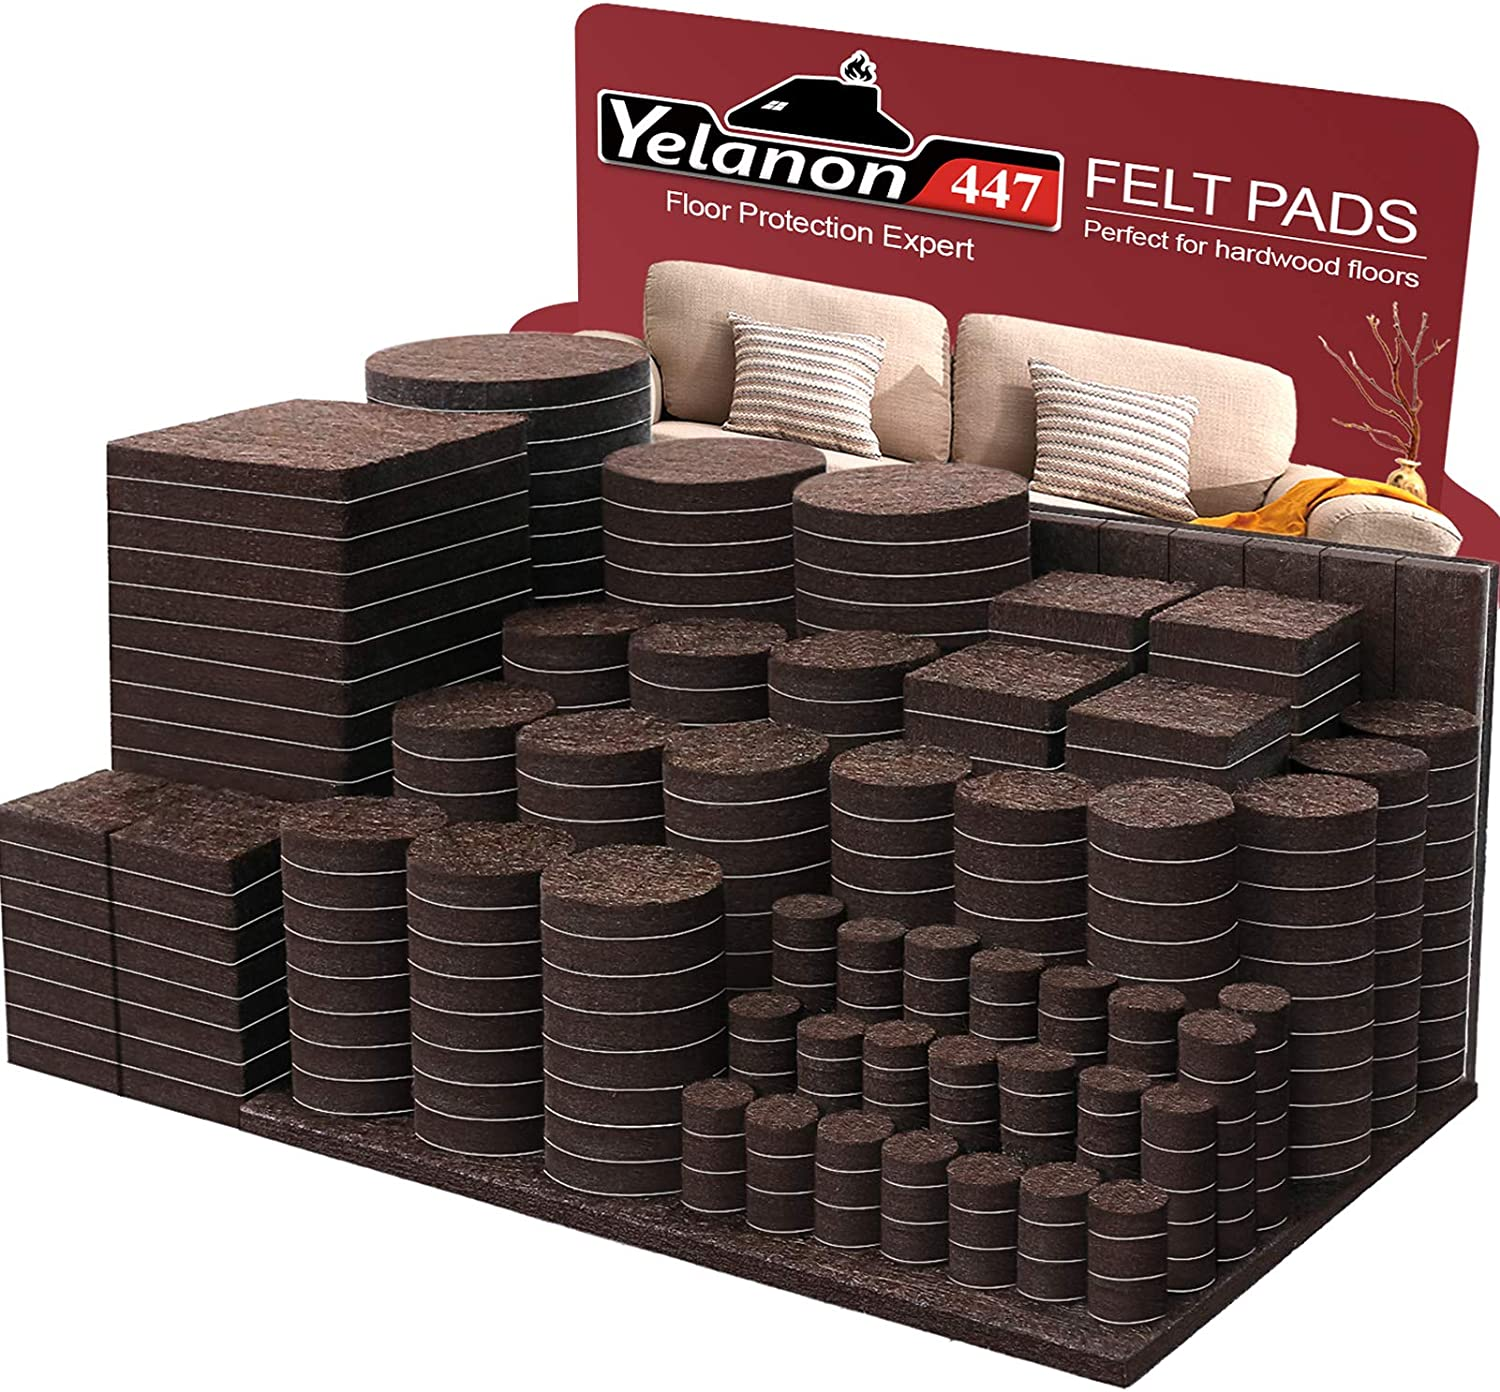 Yelanon Furniture Pads 447 Pieces - Self Adhesive Felt Pad Brown Felt Furniture Pads Anti Scratch Floor Protectors for Chair Legs Feet for Protect Hardwood Tile Wood Floor & Laminate Flooring